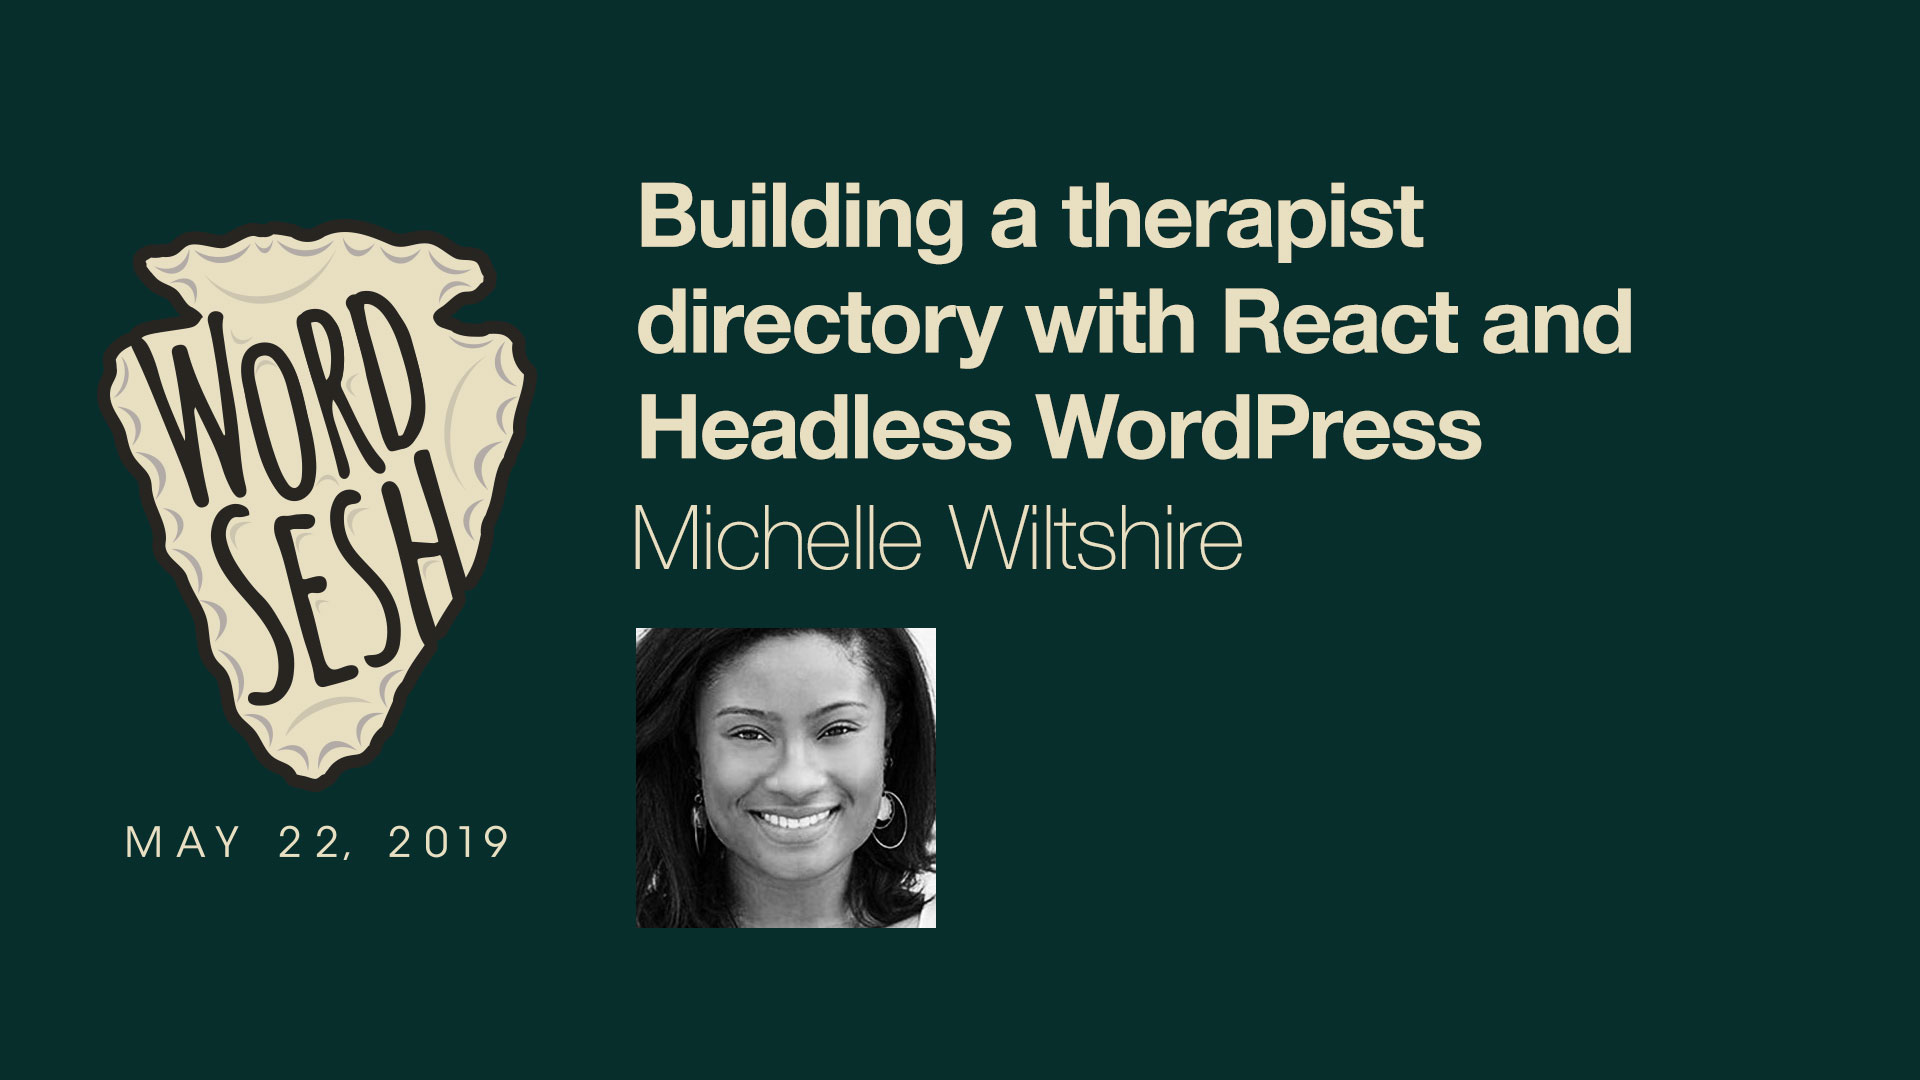 11-WordSesh-React-and-Headless-WP-Michelle-Wiltshire